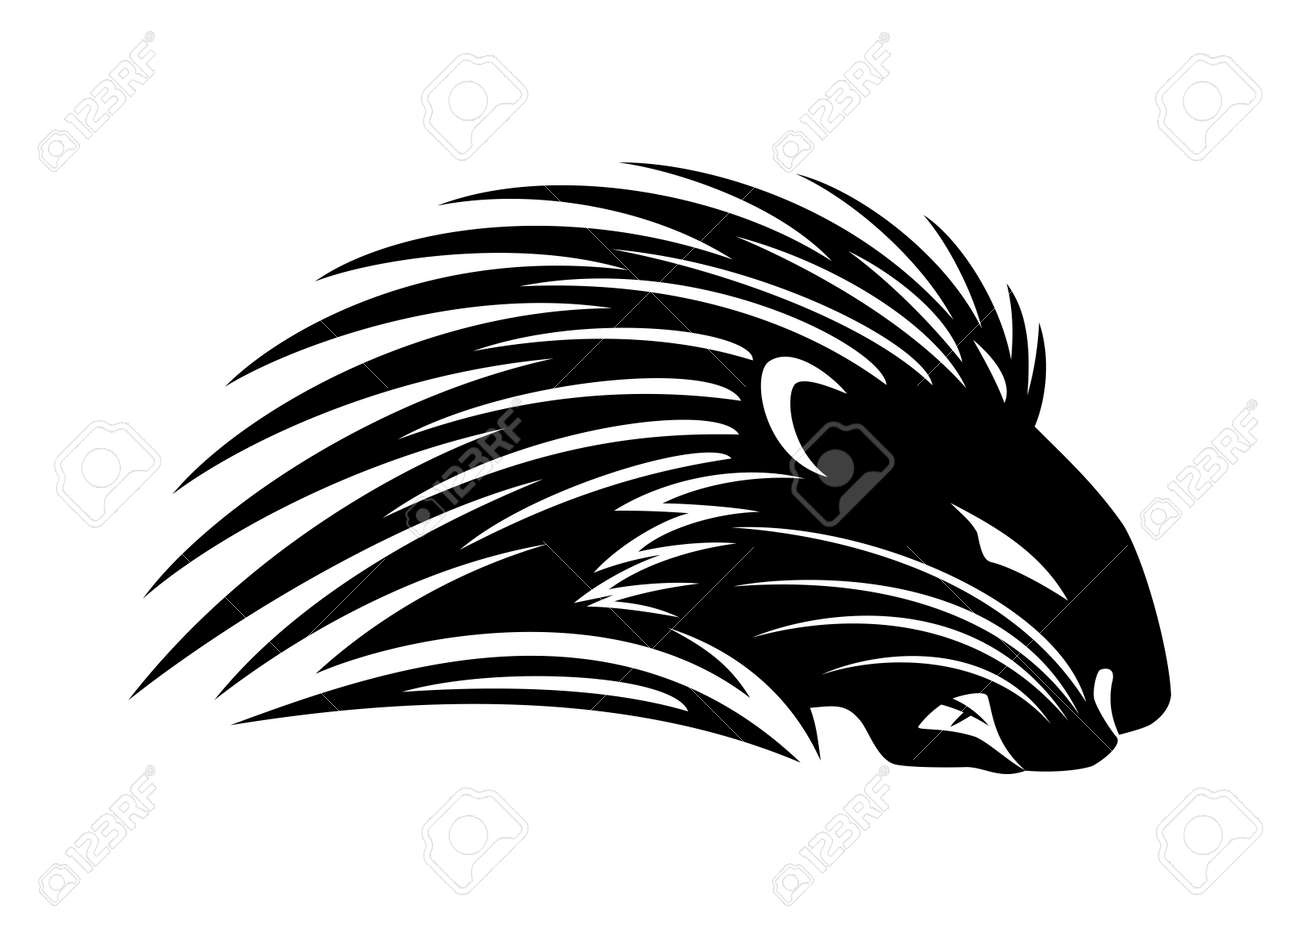 Illustration with angry porcupine icon on white background. - 166065641